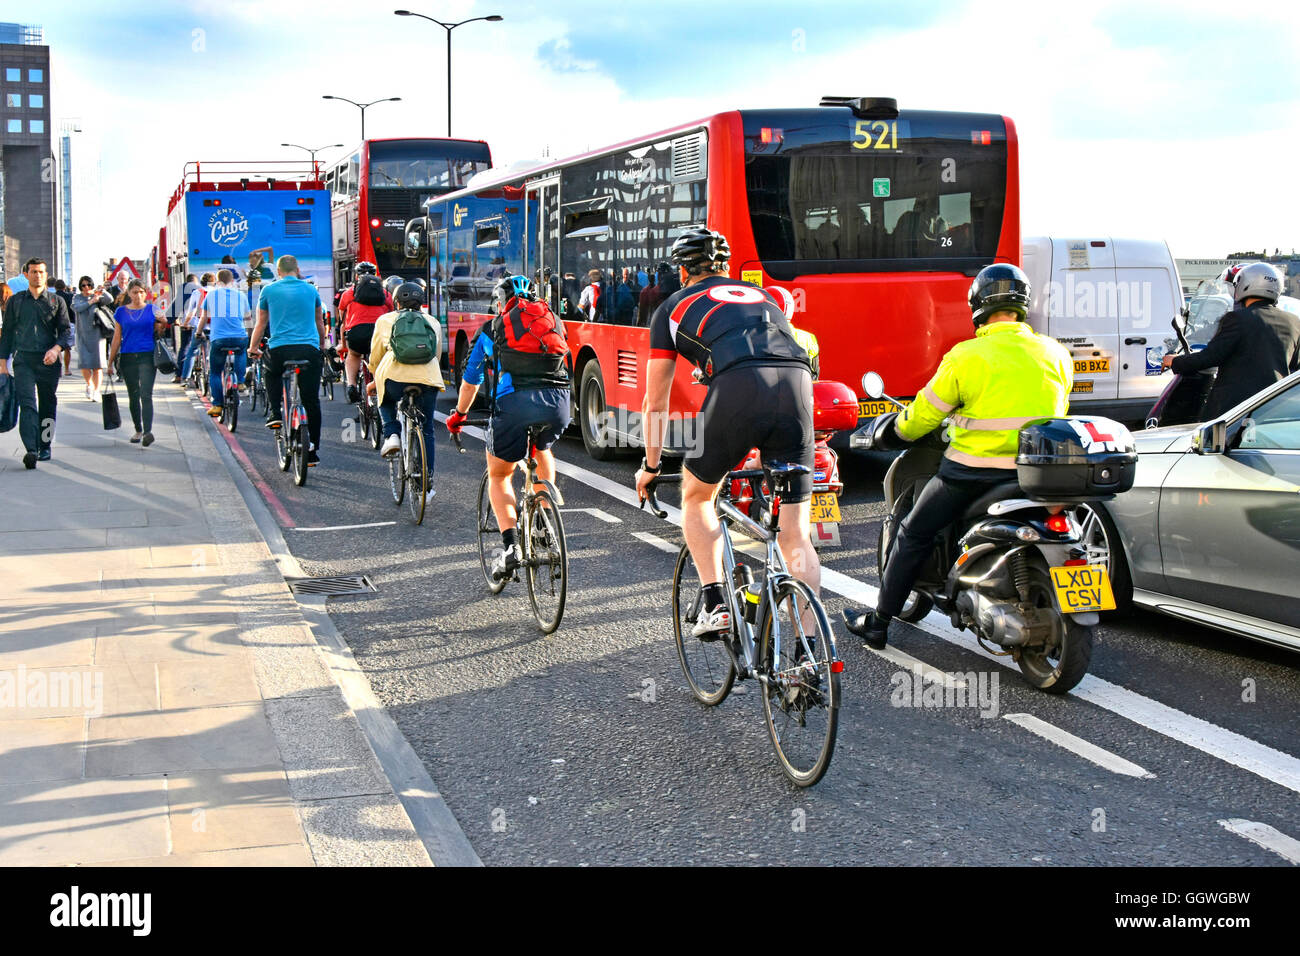 Rush hour on UK London Bridge as workers try to cycle home competing with other commuters & traffic in the scramble - Stock Image